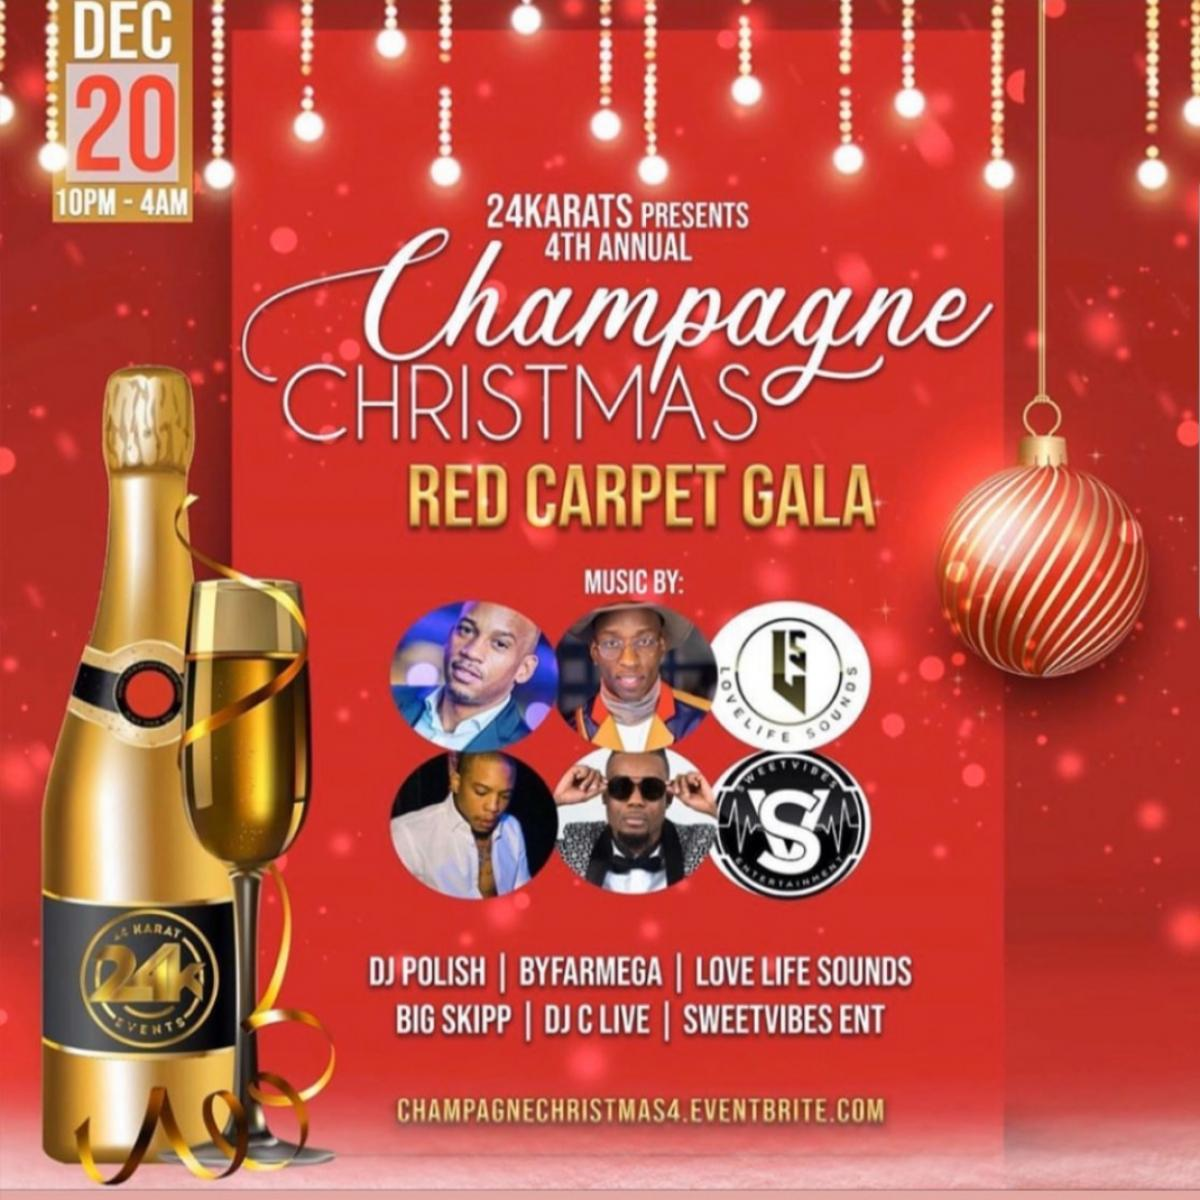 Champagne Christmas: Red Carpet Gala flyer or graphic.